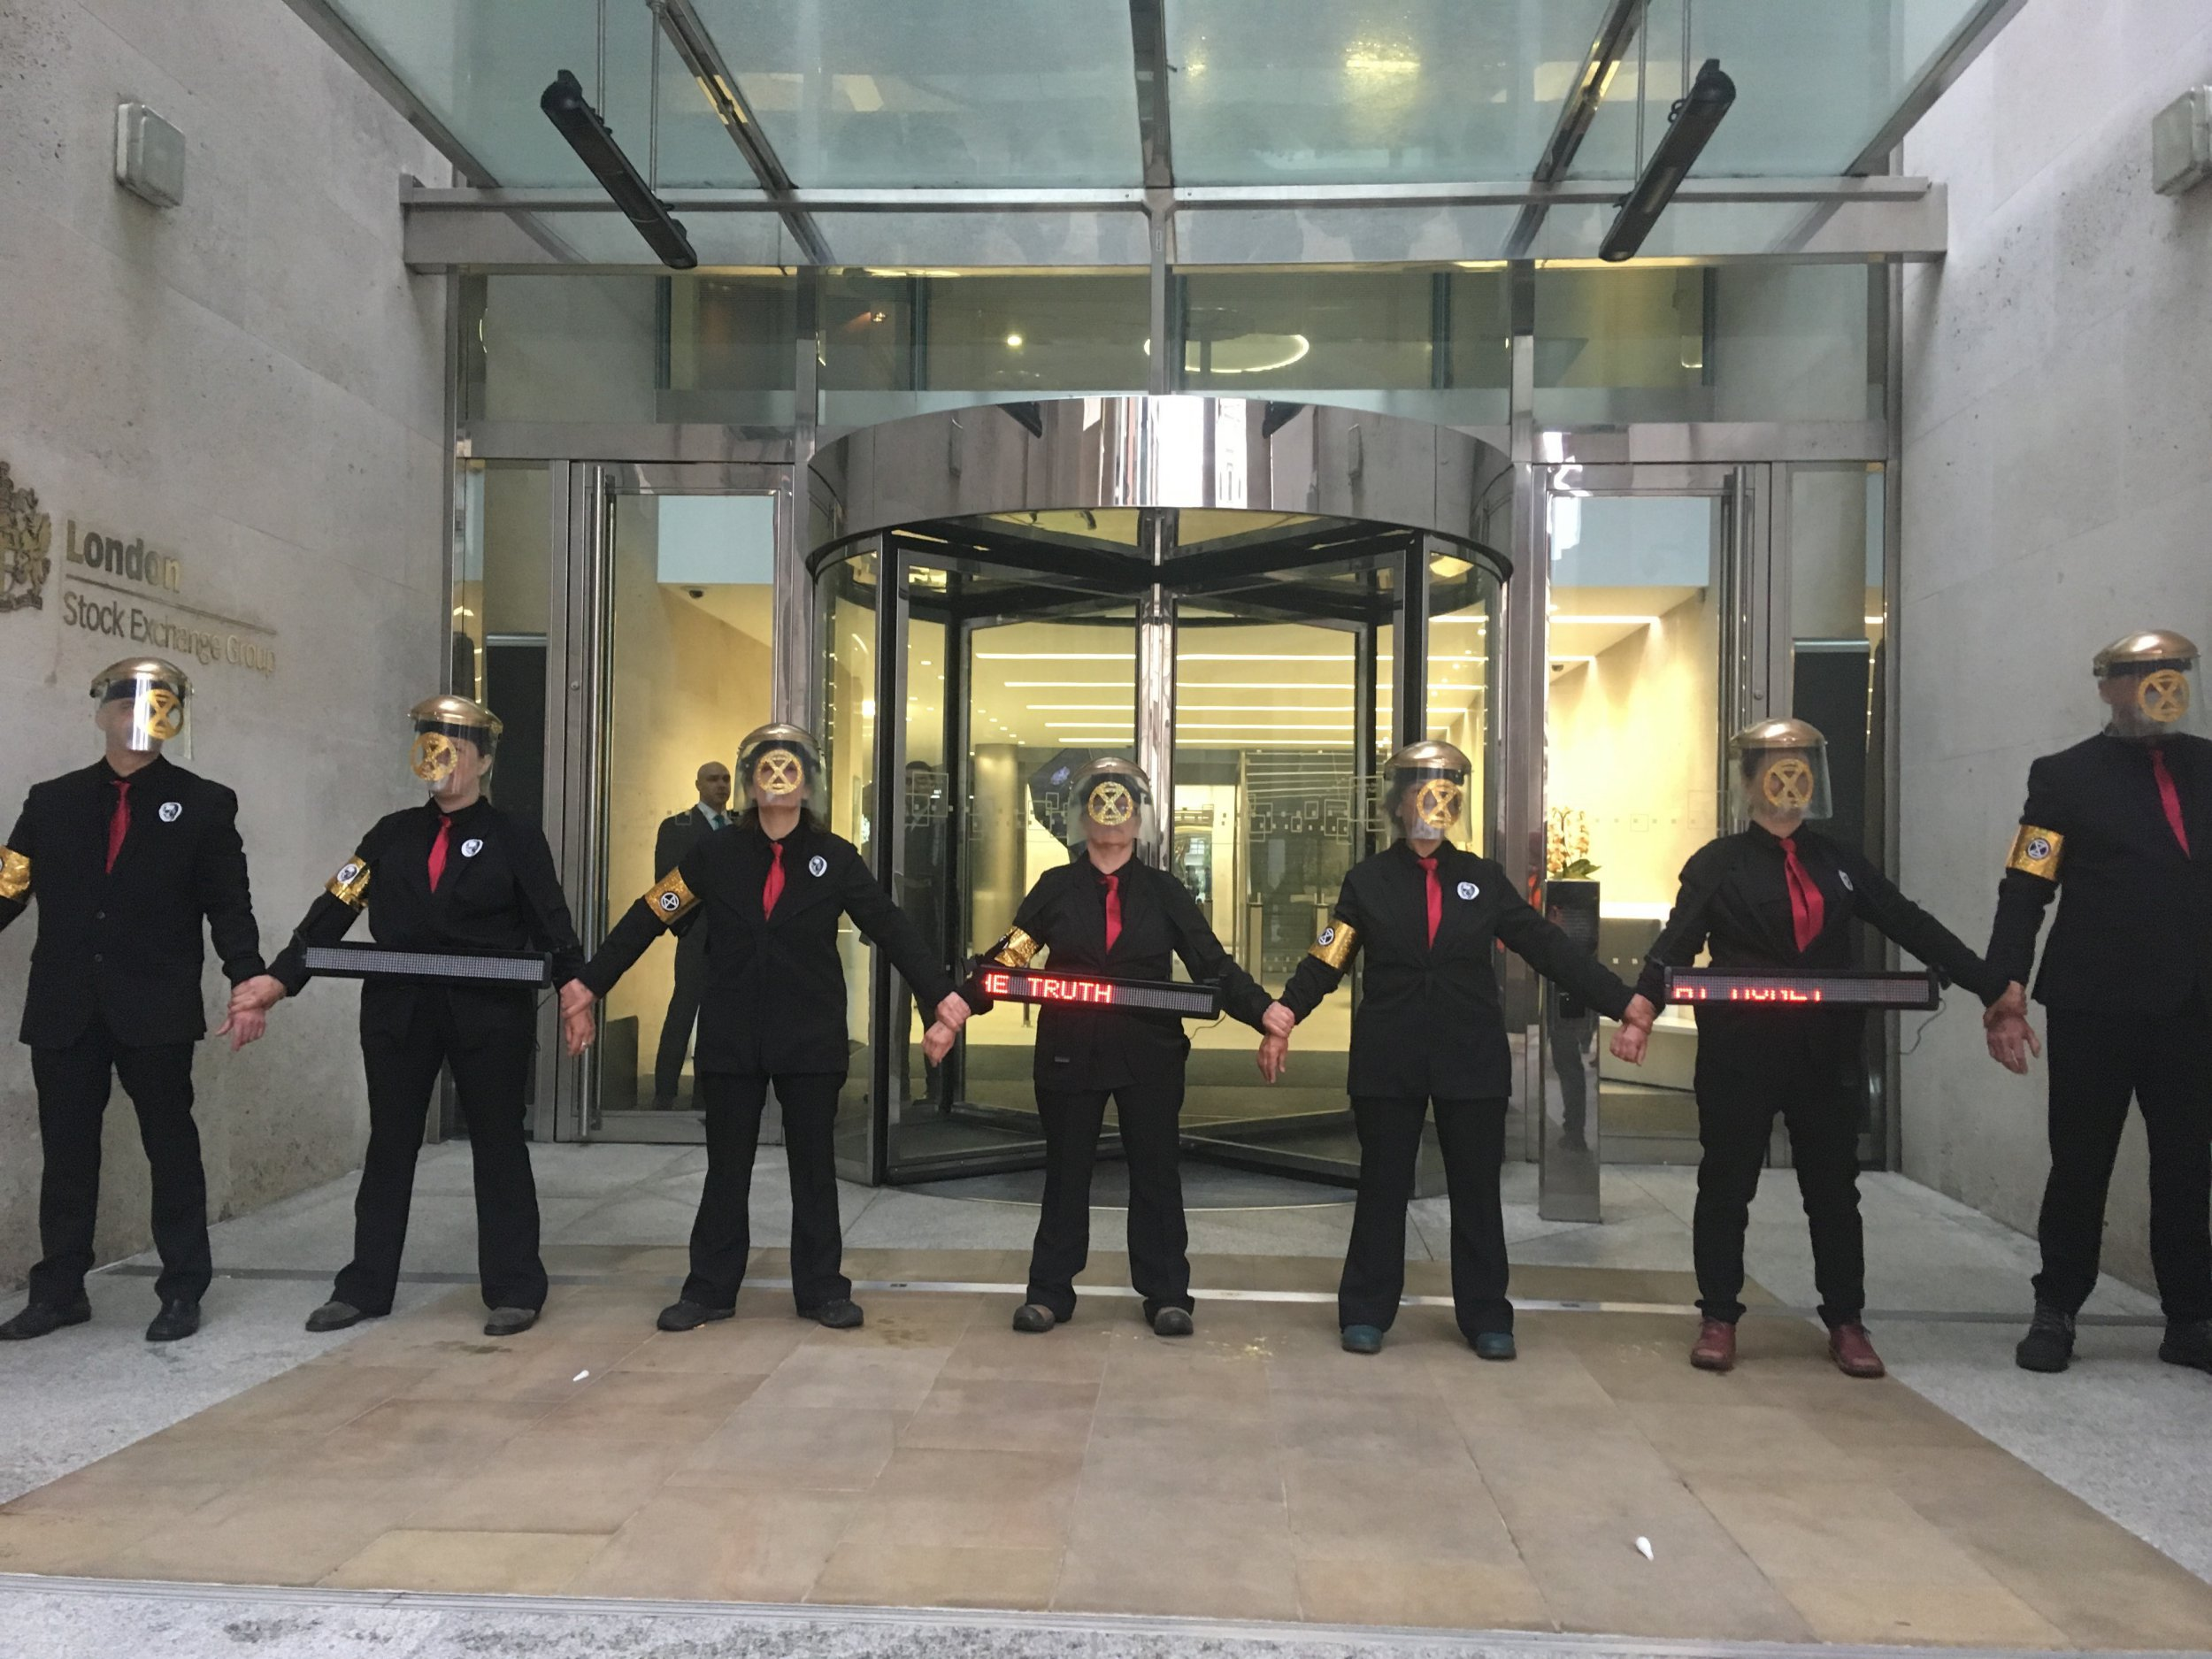 Climate protesters target London Stock Exchange and Canary Wharf